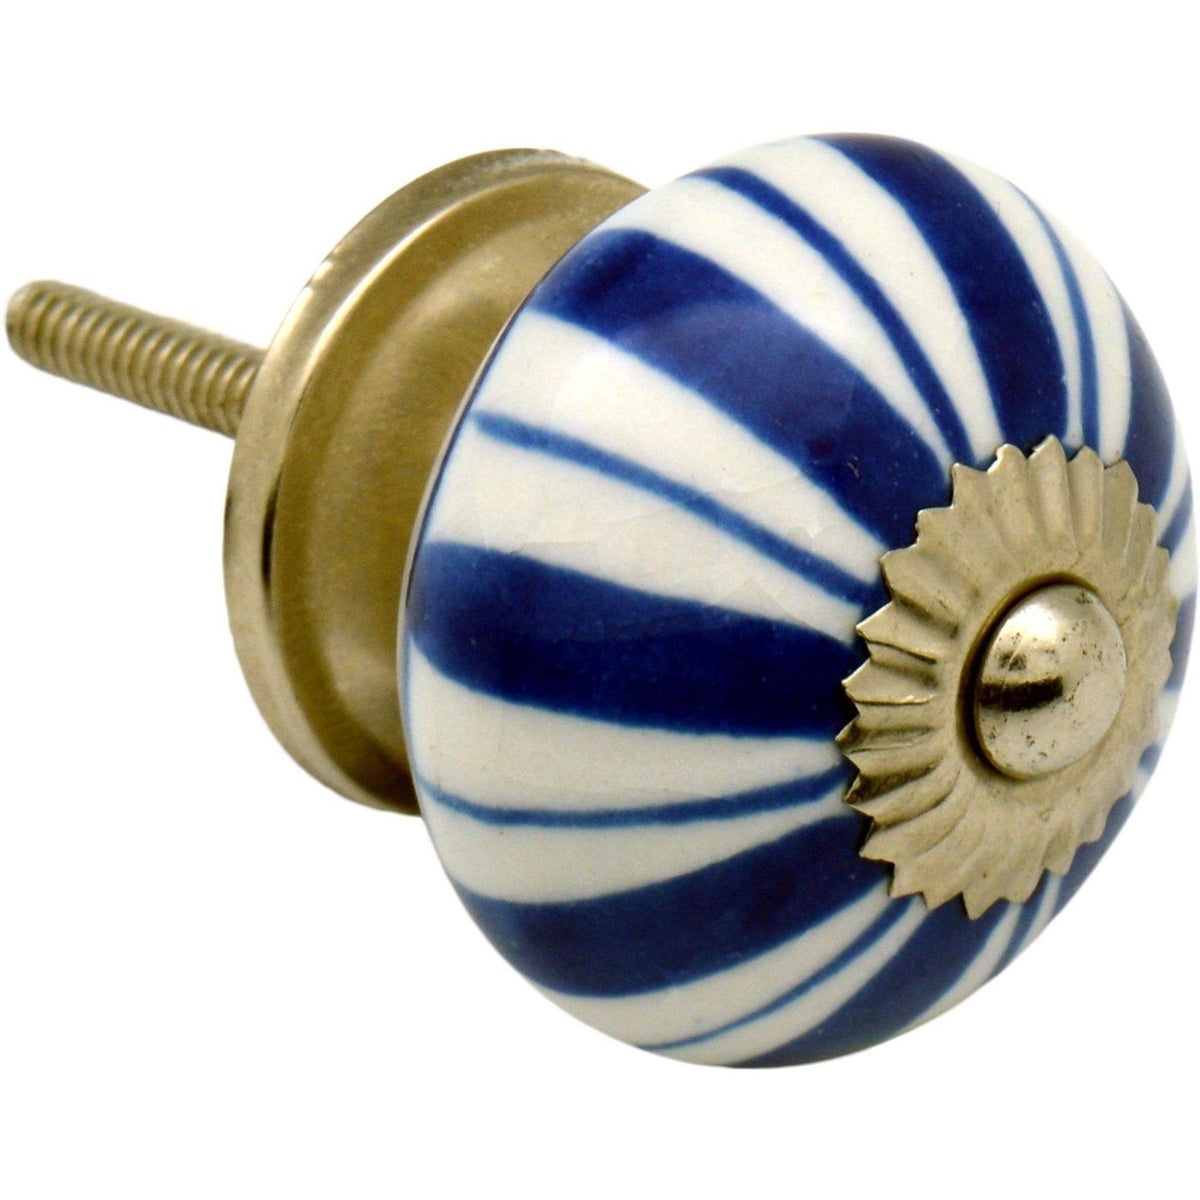 Nicola Spring Floral Ceramic Door Knob and Handle - Dark Blue Flower Lines